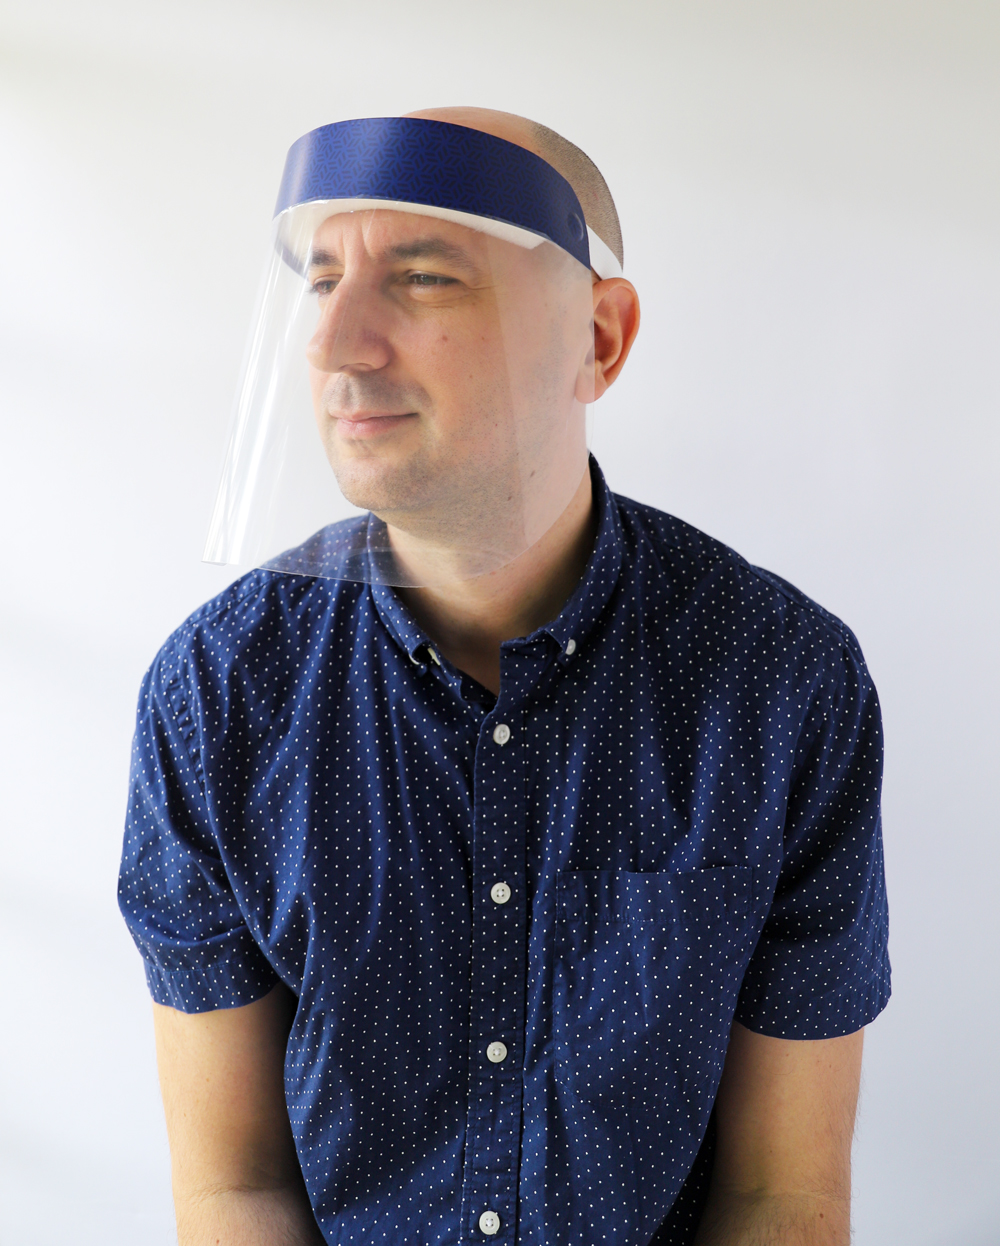 Men's Blue Hexagons Plastic Face Shield protects your eyes, mouth, and nose with style and fun